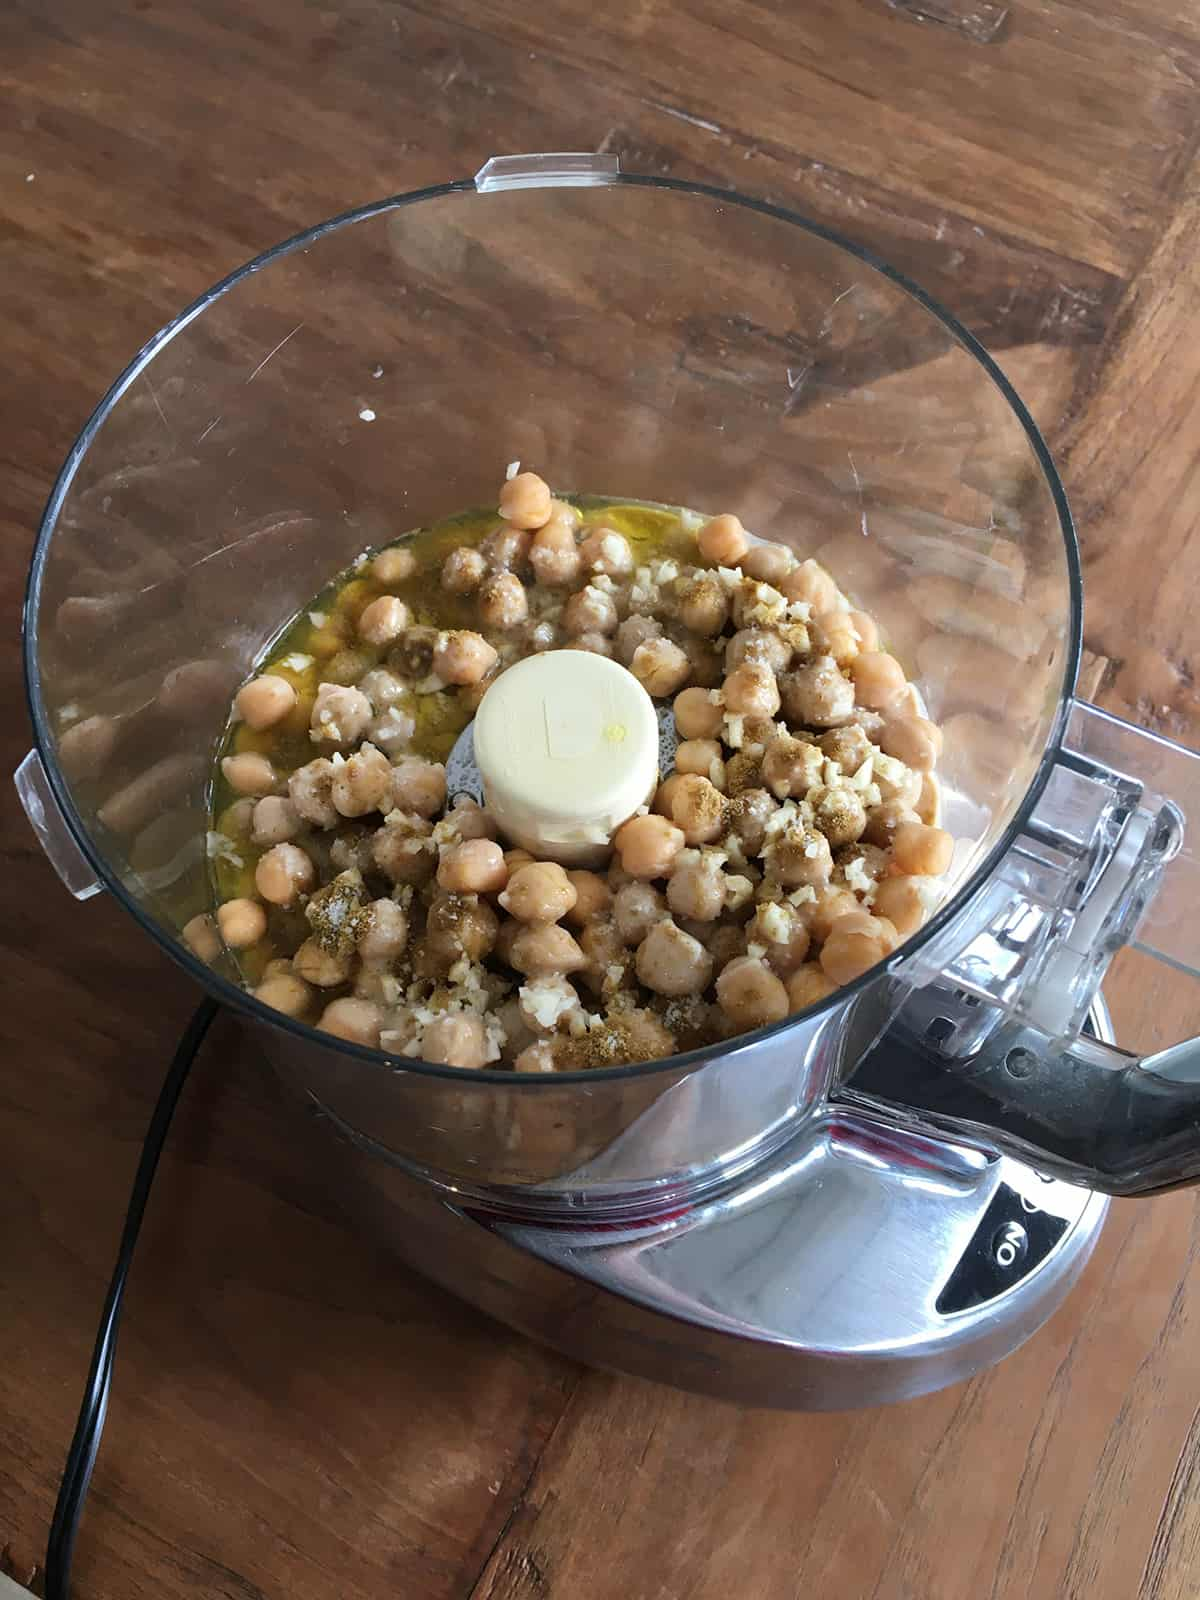 Chickpeas, garlic and other hummus ingredients in a food processor on a brown wood table